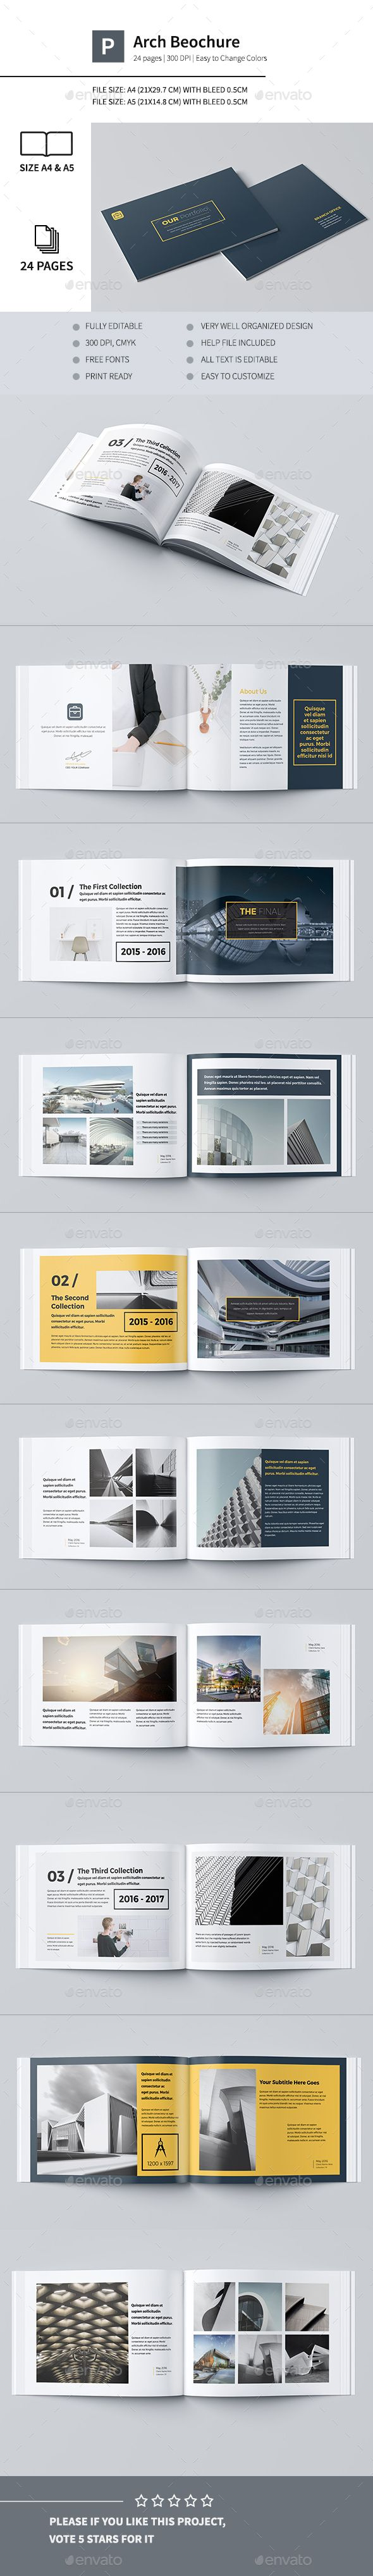 Our Portfolio Architecture 24 Pages A4 & A5 | Portafolio, Diseño ...